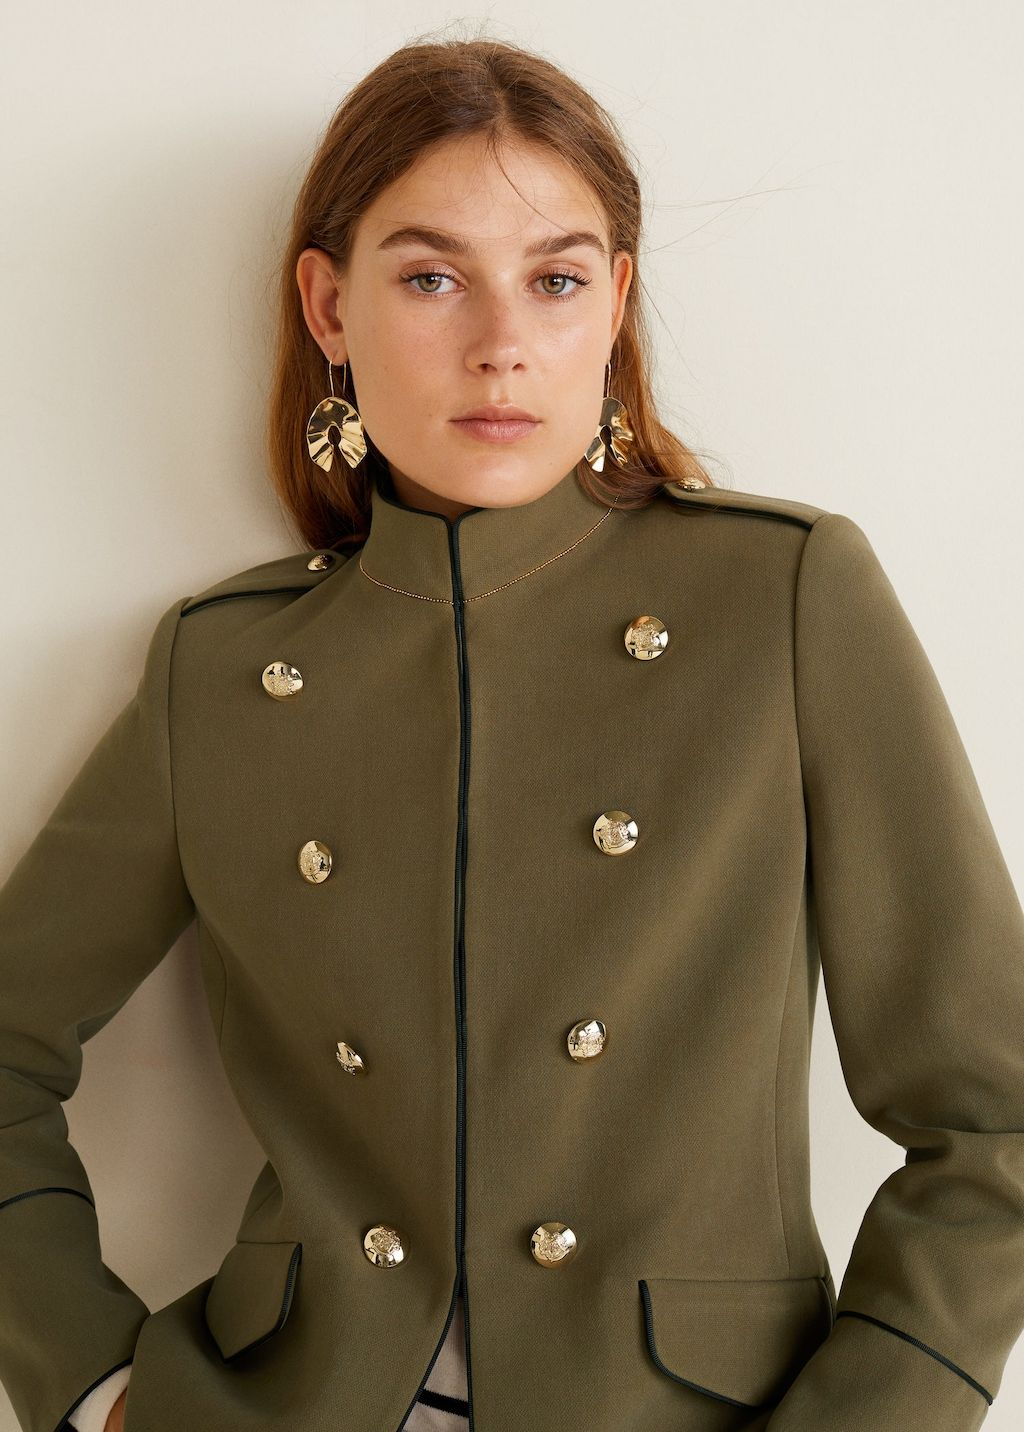 Online Fashion Military Fashion Military Style Jackets Military Jacket Outfits [ 1432 x 1024 Pixel ]